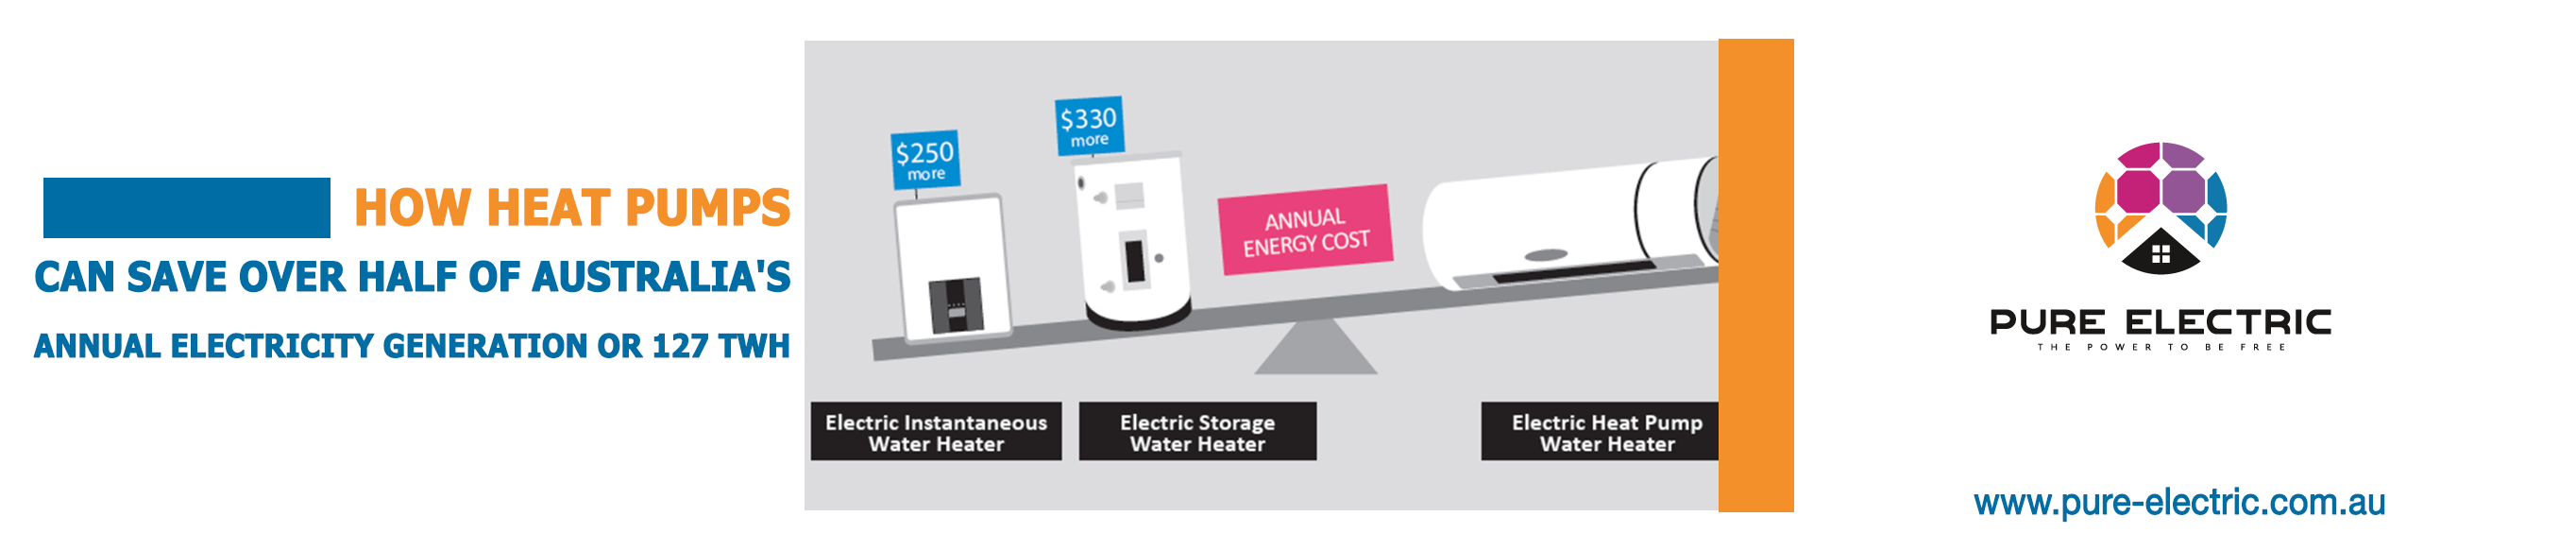 HOW HEAT PUMPS CAN SAVE OVER HALF OF AUSTRALIA'S ANNUAL ELECTRICITY GENERATION OR 127 TWH